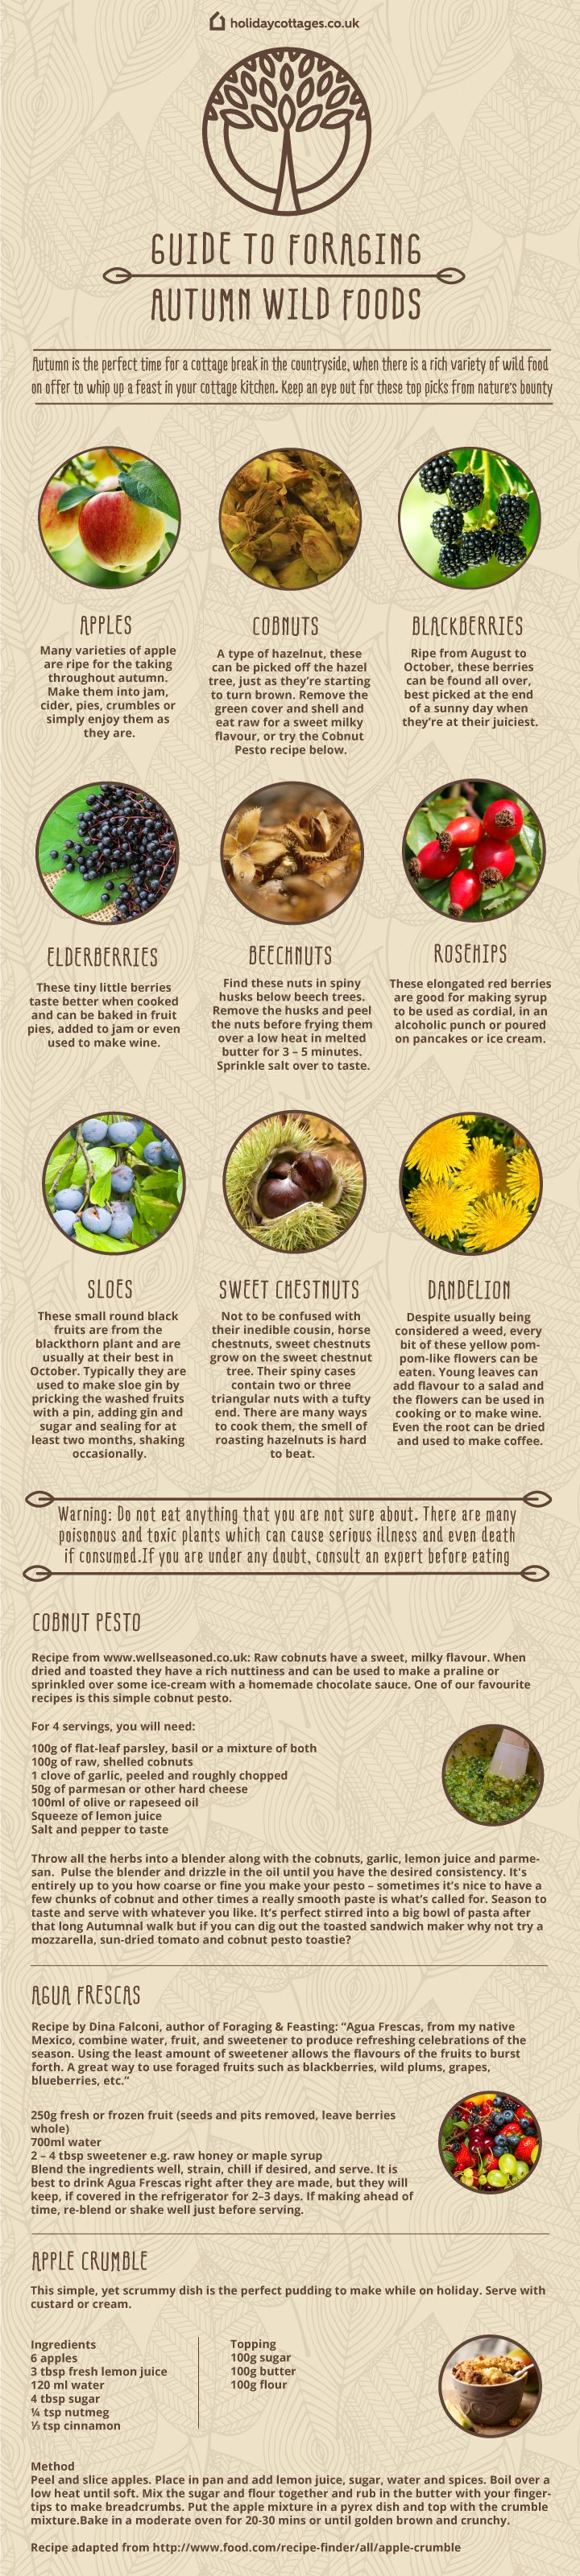 Autumn is a prime time for foraging wild foods! Click through for more detailed info.